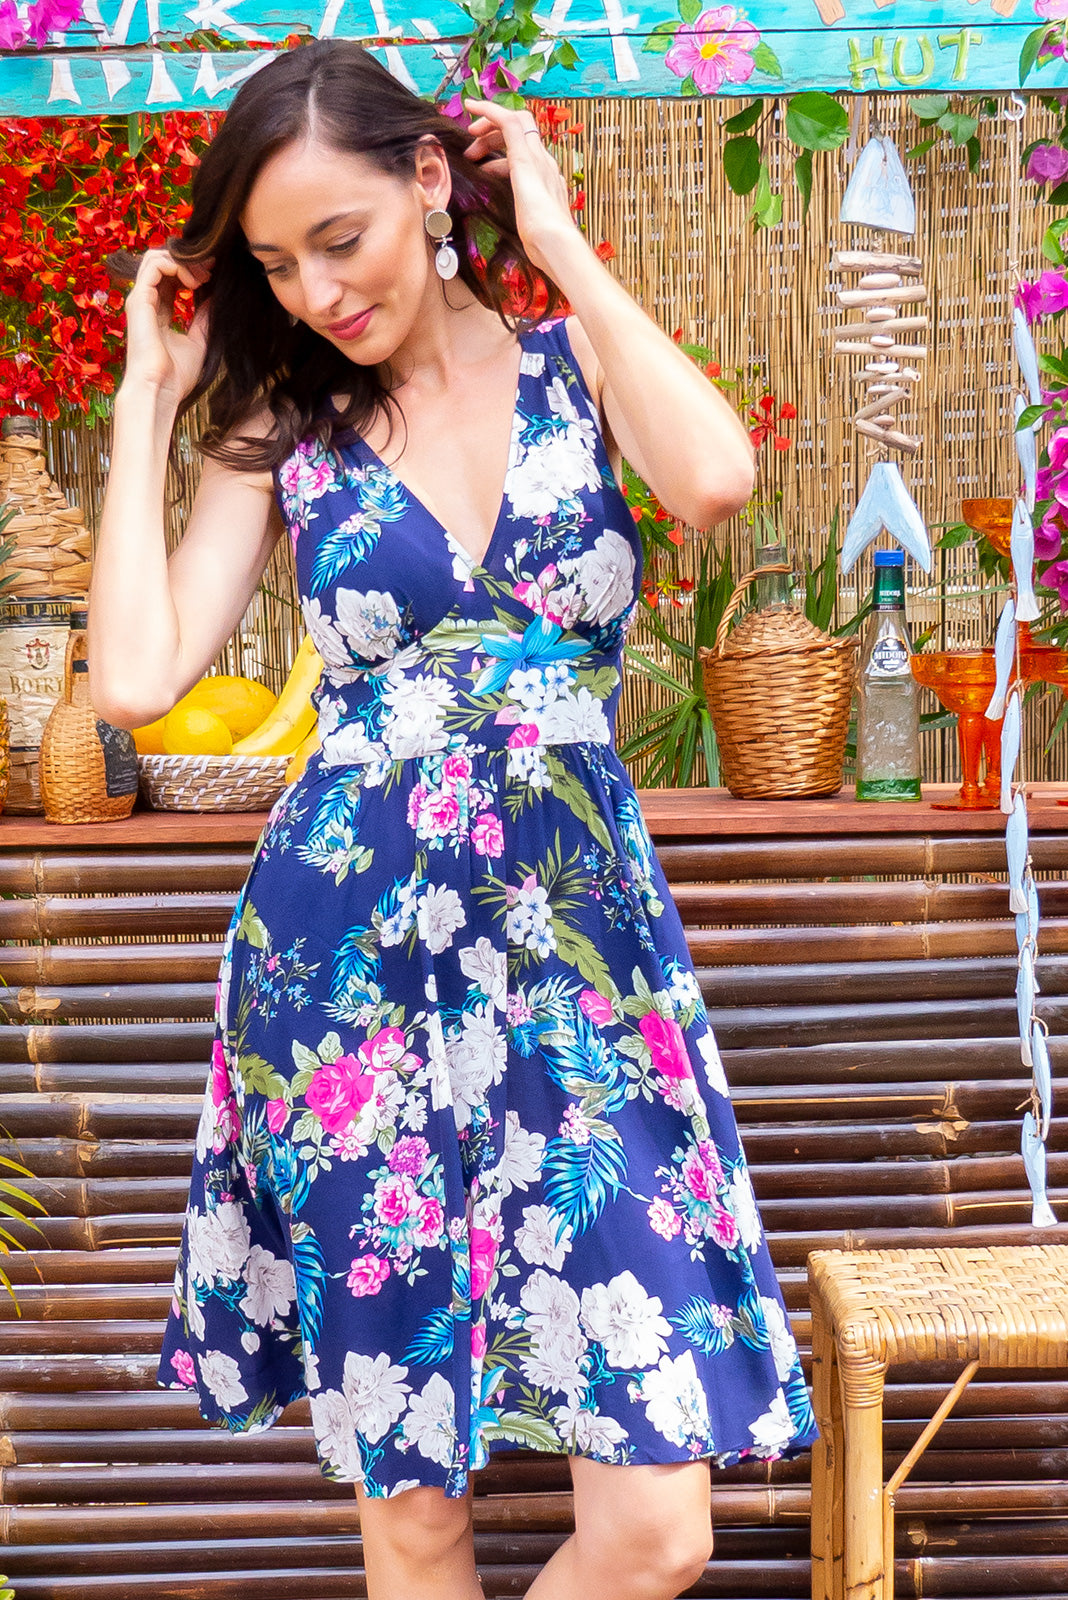 Little Lola Del Mar dress features a vintage inspired fitted basque waist and elasticated waist with a sleeveless design and deep v neck the fabric is a soft woven rayon in bright navy tropical floral print